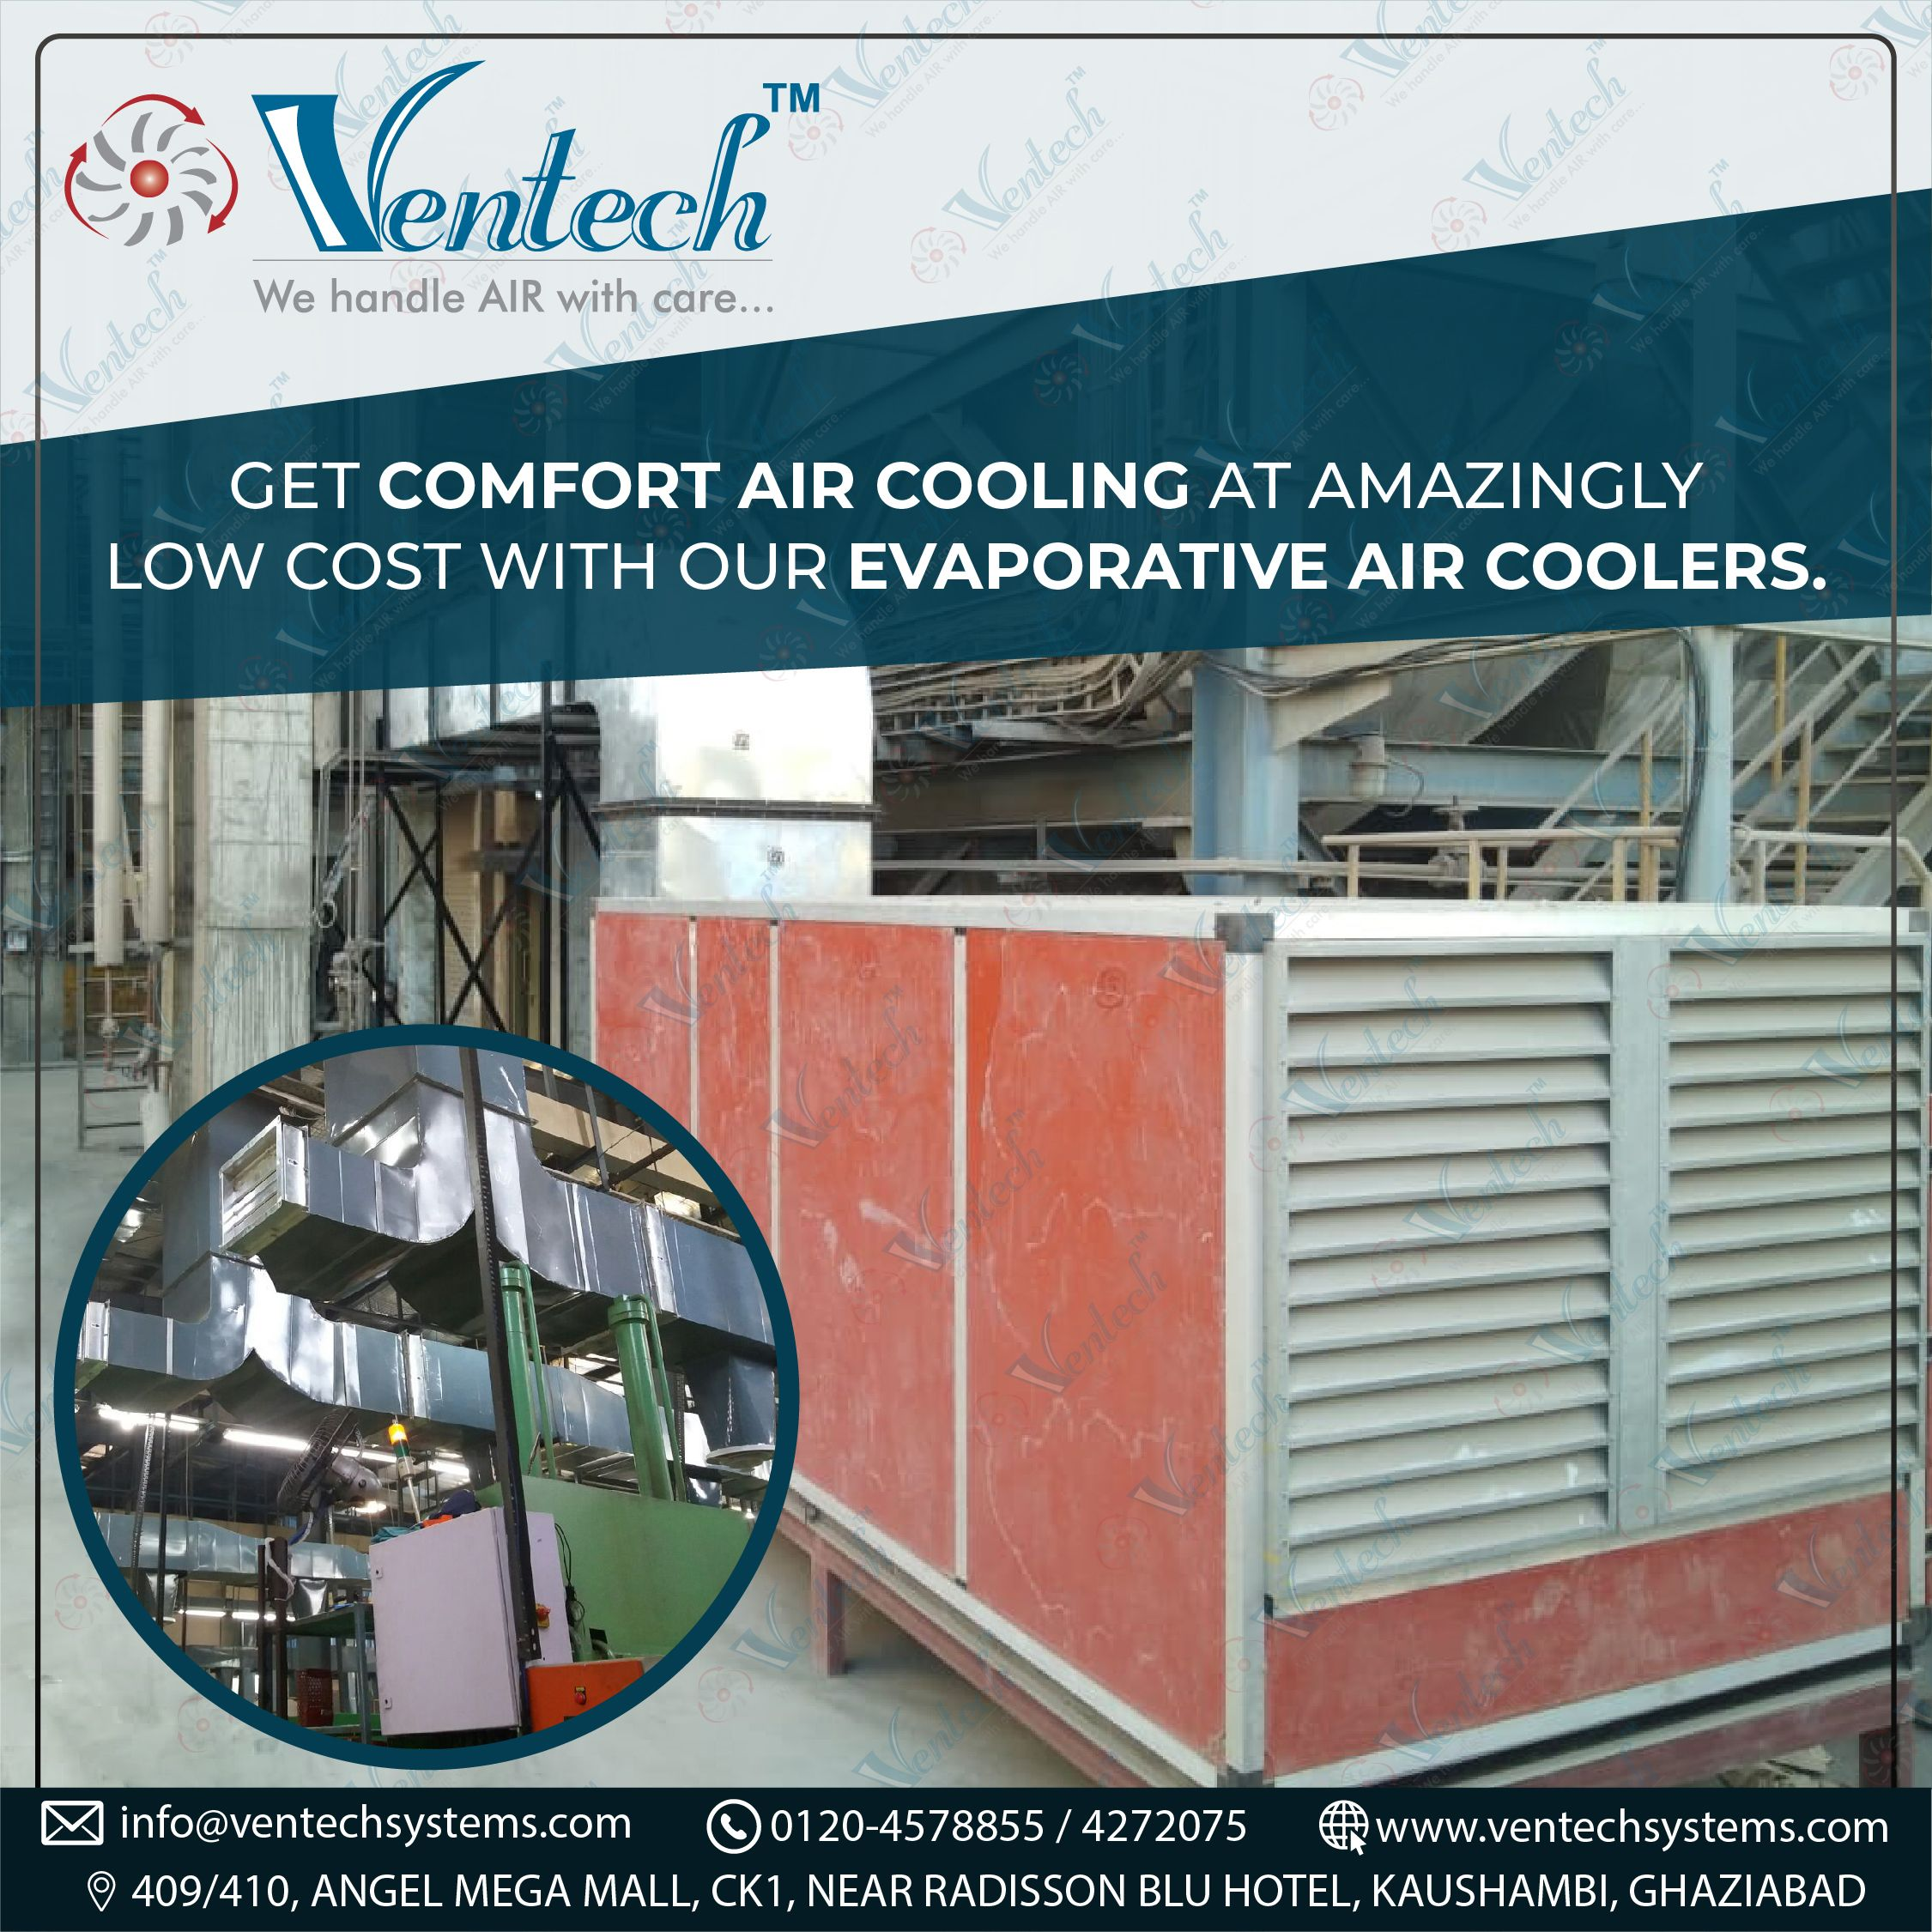 Get Comfort Air Cooling at Amazingly Low Cost with our